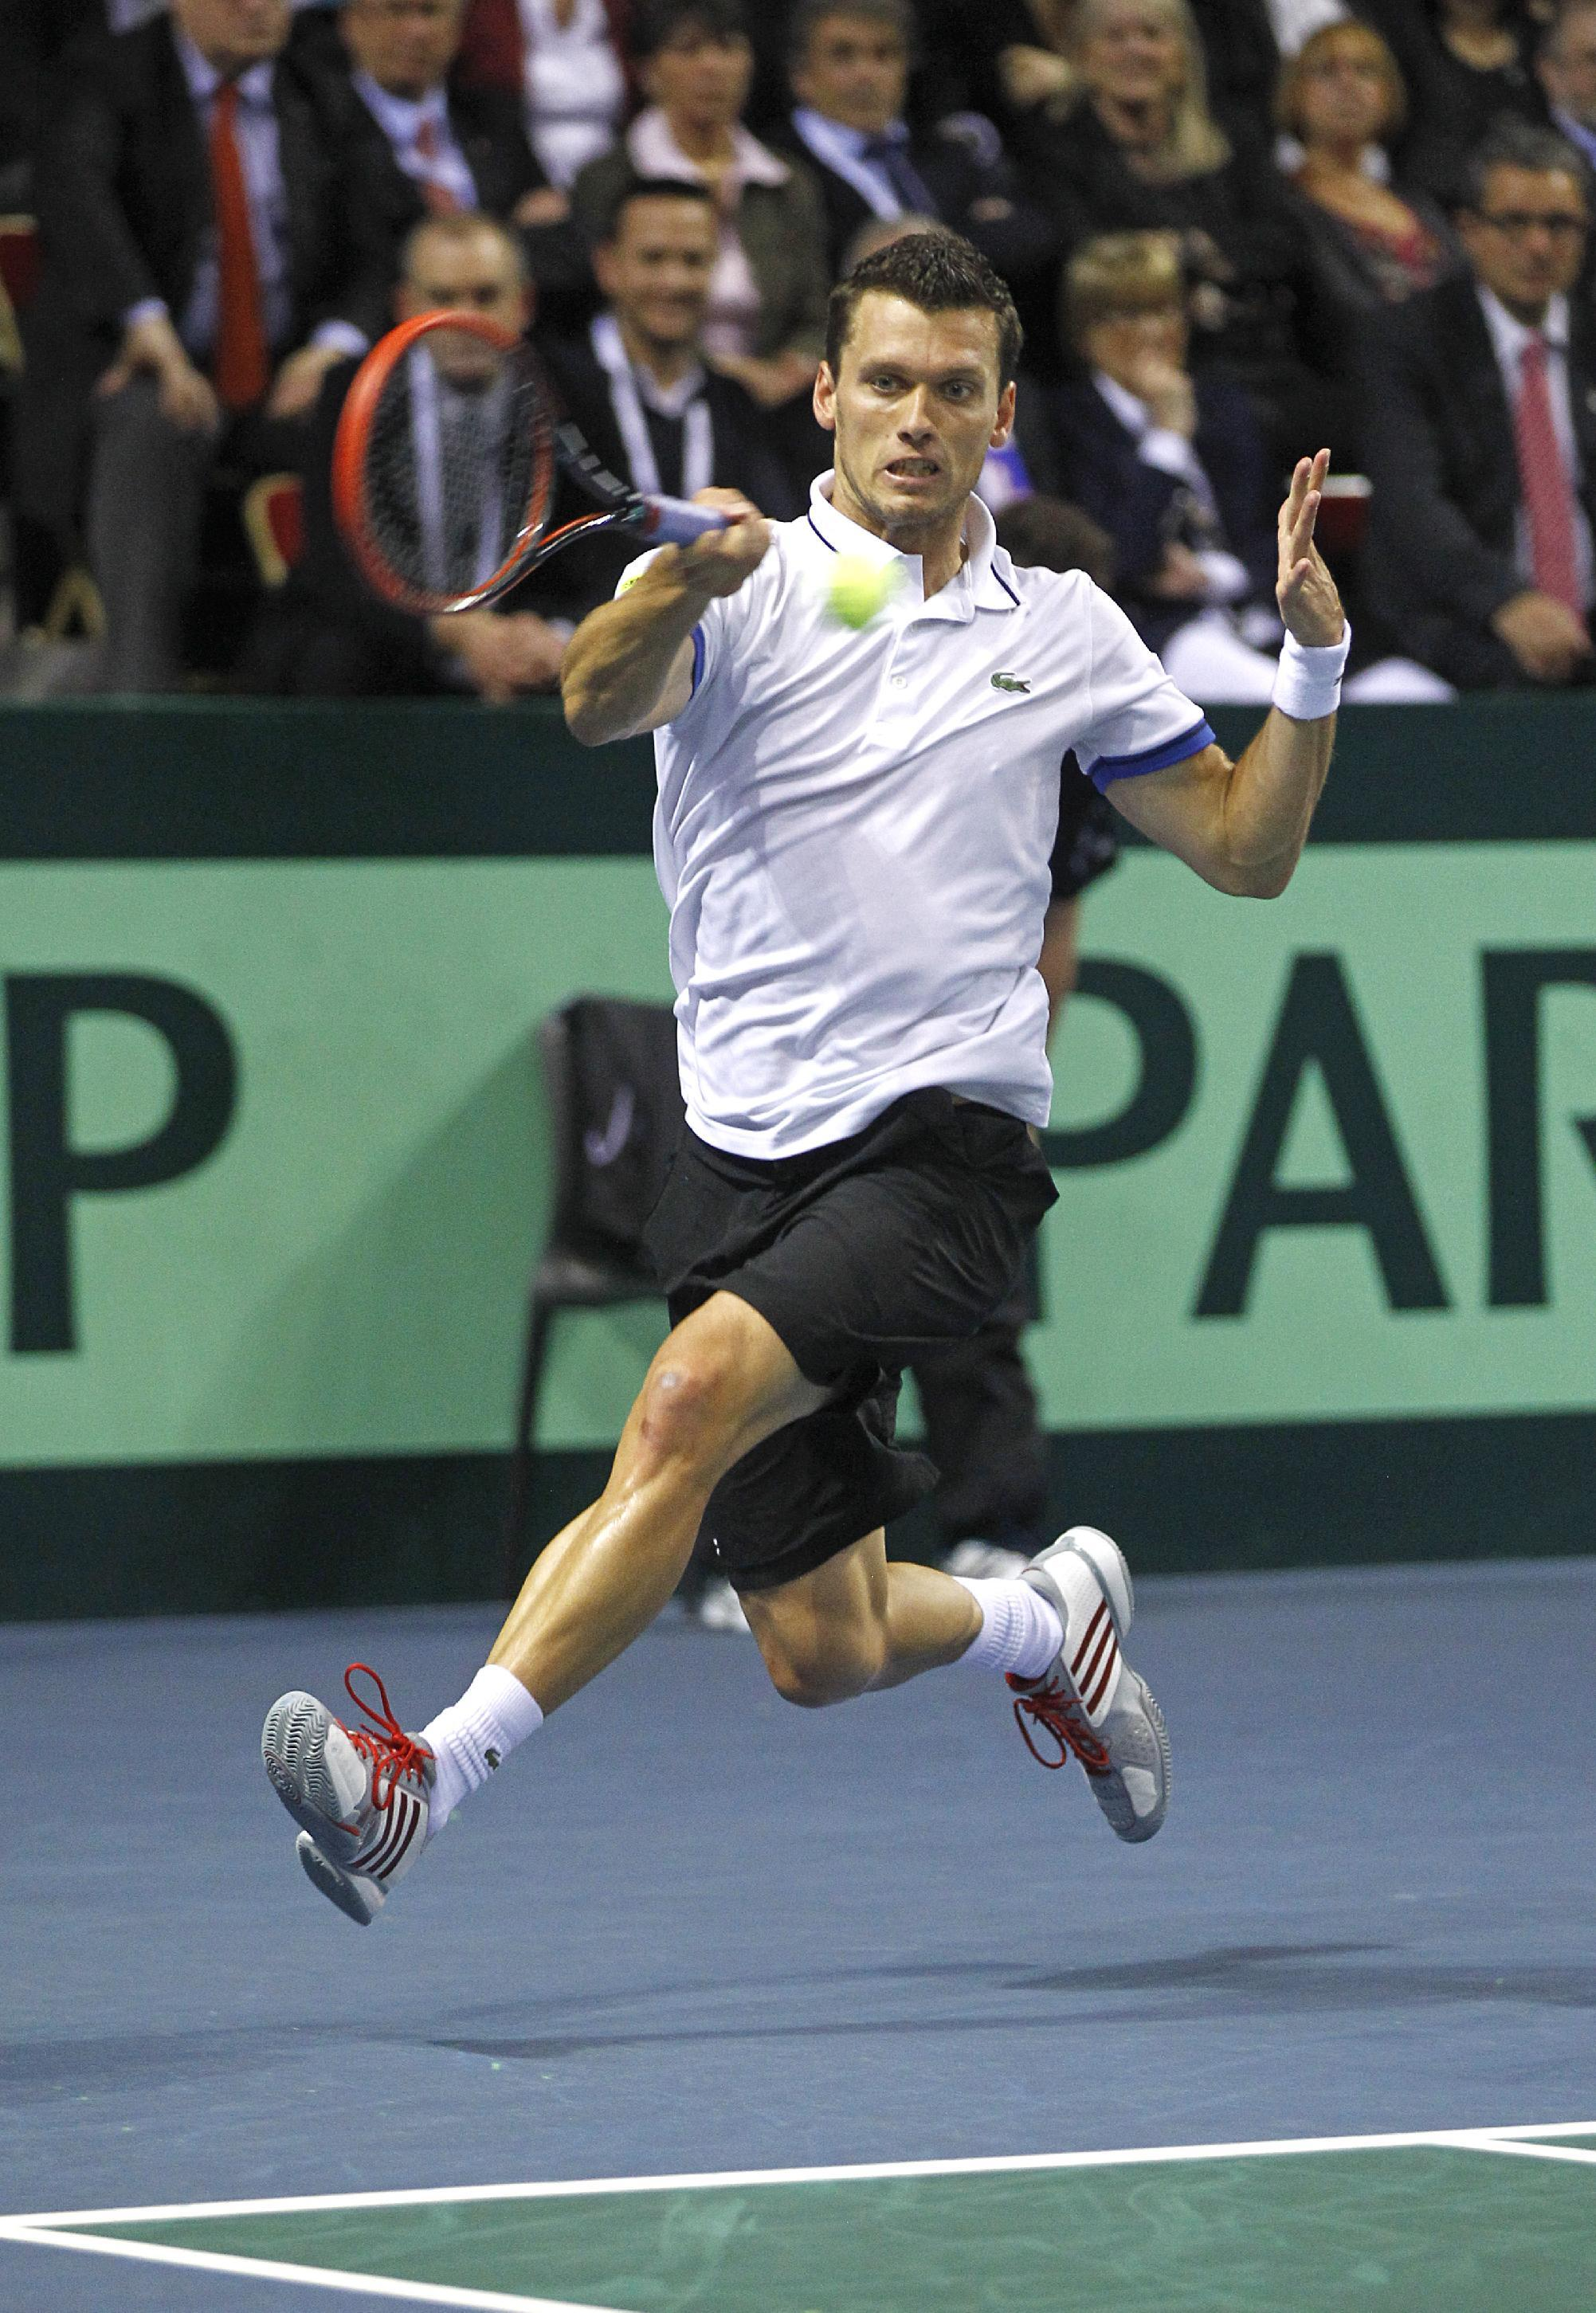 German player Tobias Kamke returns the ball to French player Jo-Wilfried Tsonga during their singles match in the quarterfinals of the Davis Cup between France and Germany, in Nancy, eastern France, Sunday April 6, 2014.(AP Photo/Remy de la Mauviniere)